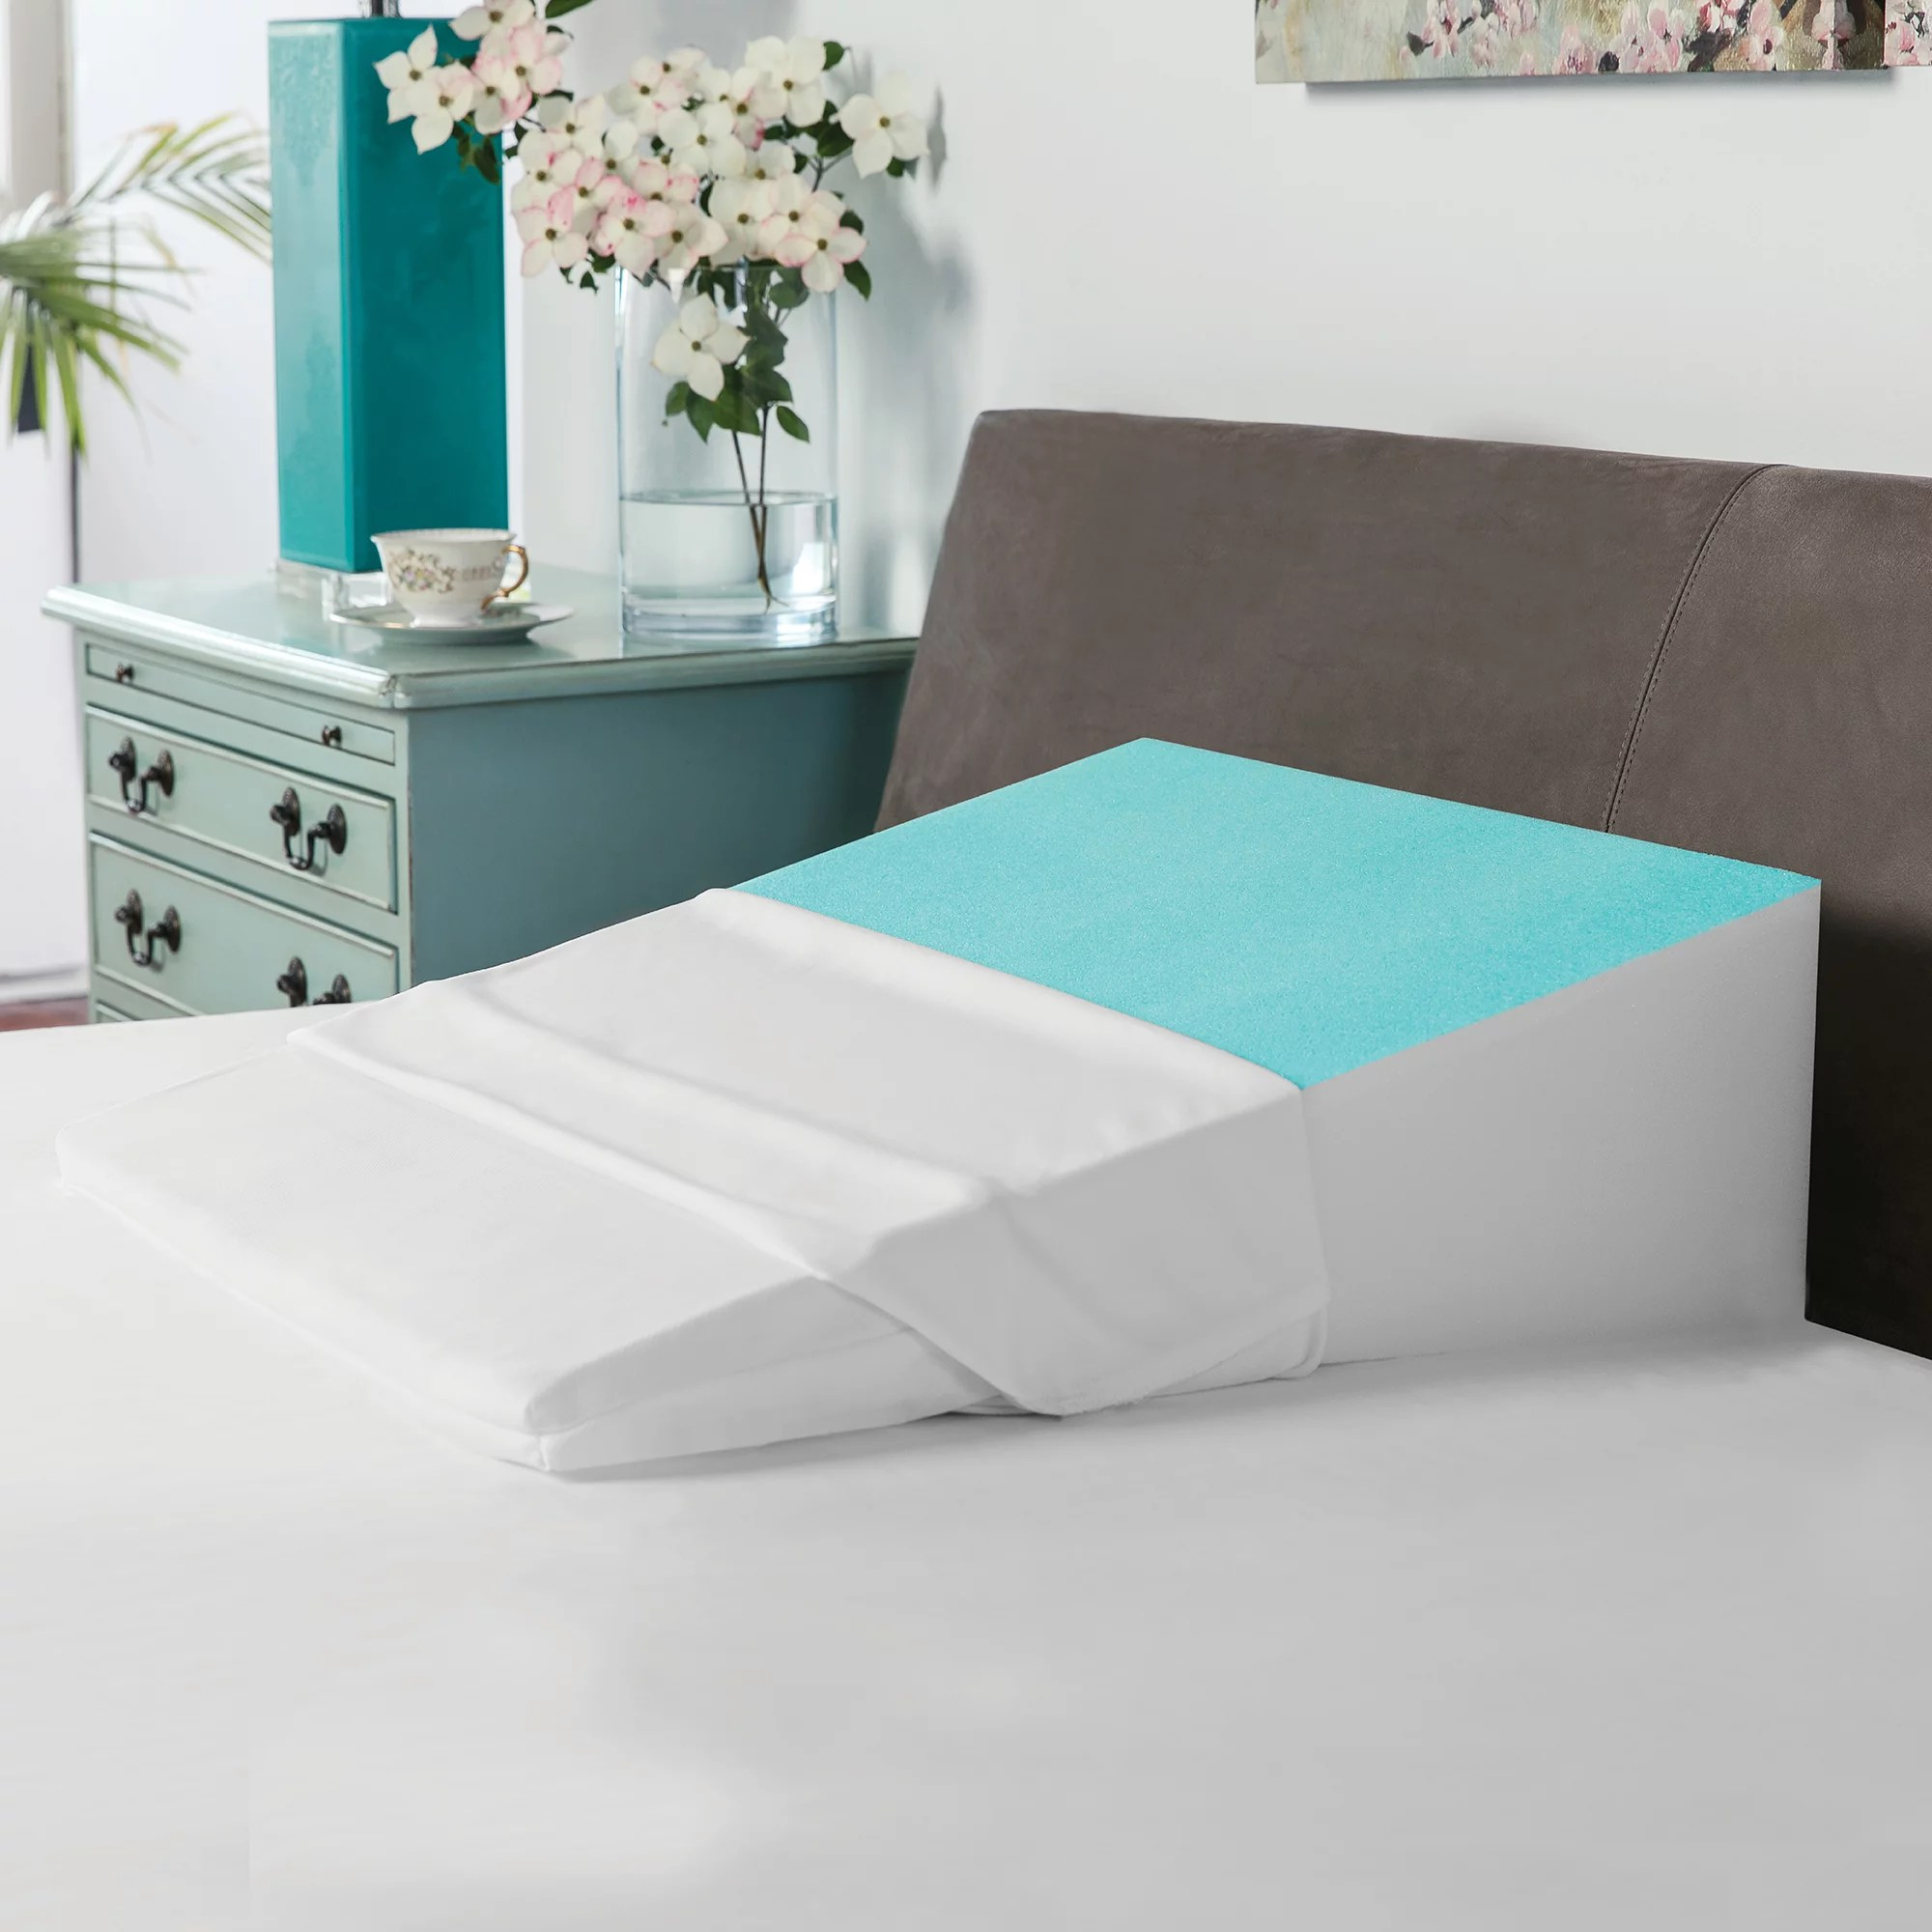 acid reflux bed wedge by hermell products includes white quilted cover fw4060mo